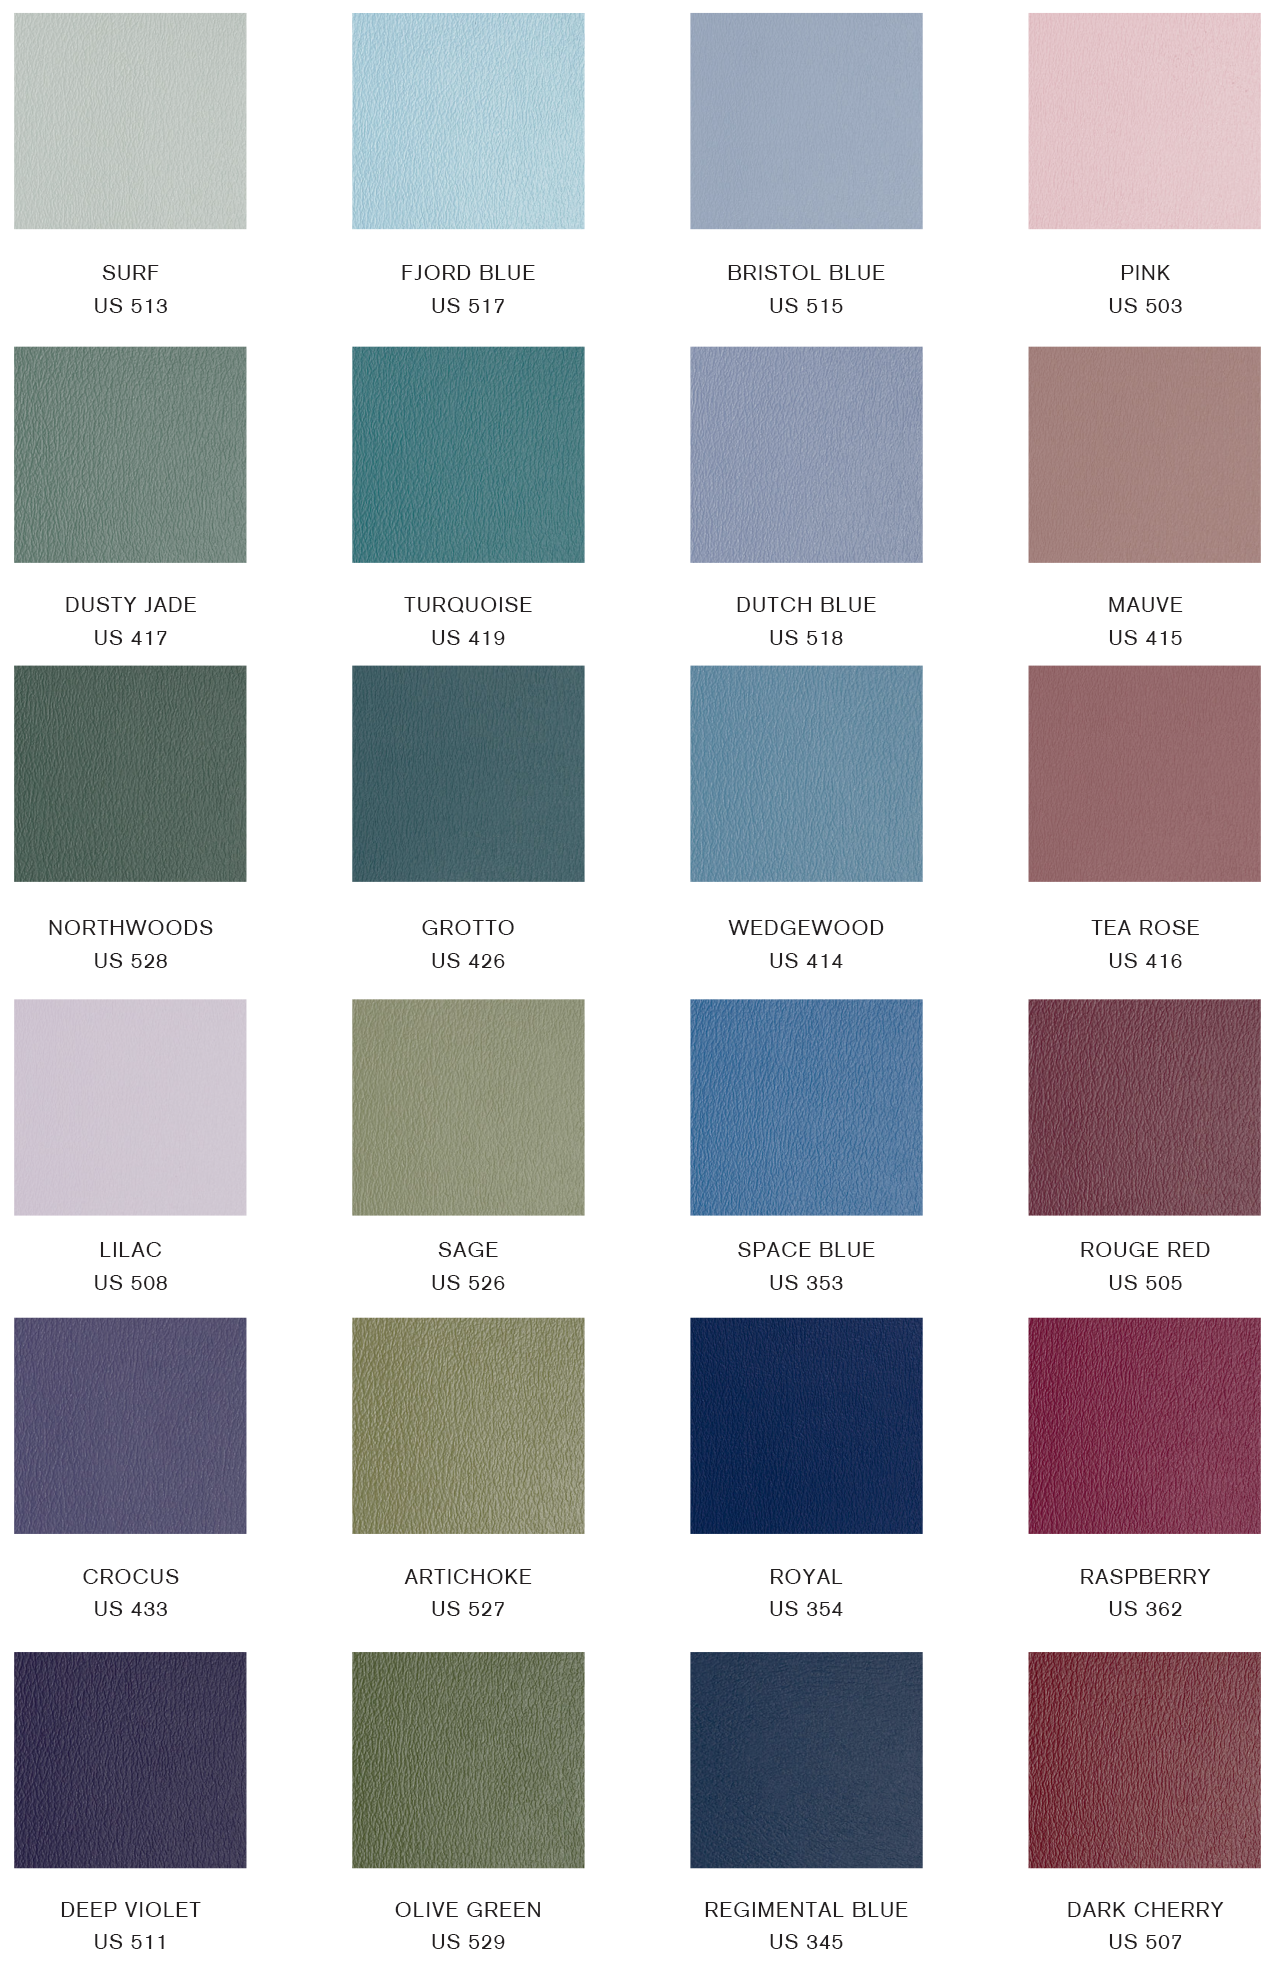 Upholstery swatch chart gratz pilates industries download swatch chart nvjuhfo Image collections